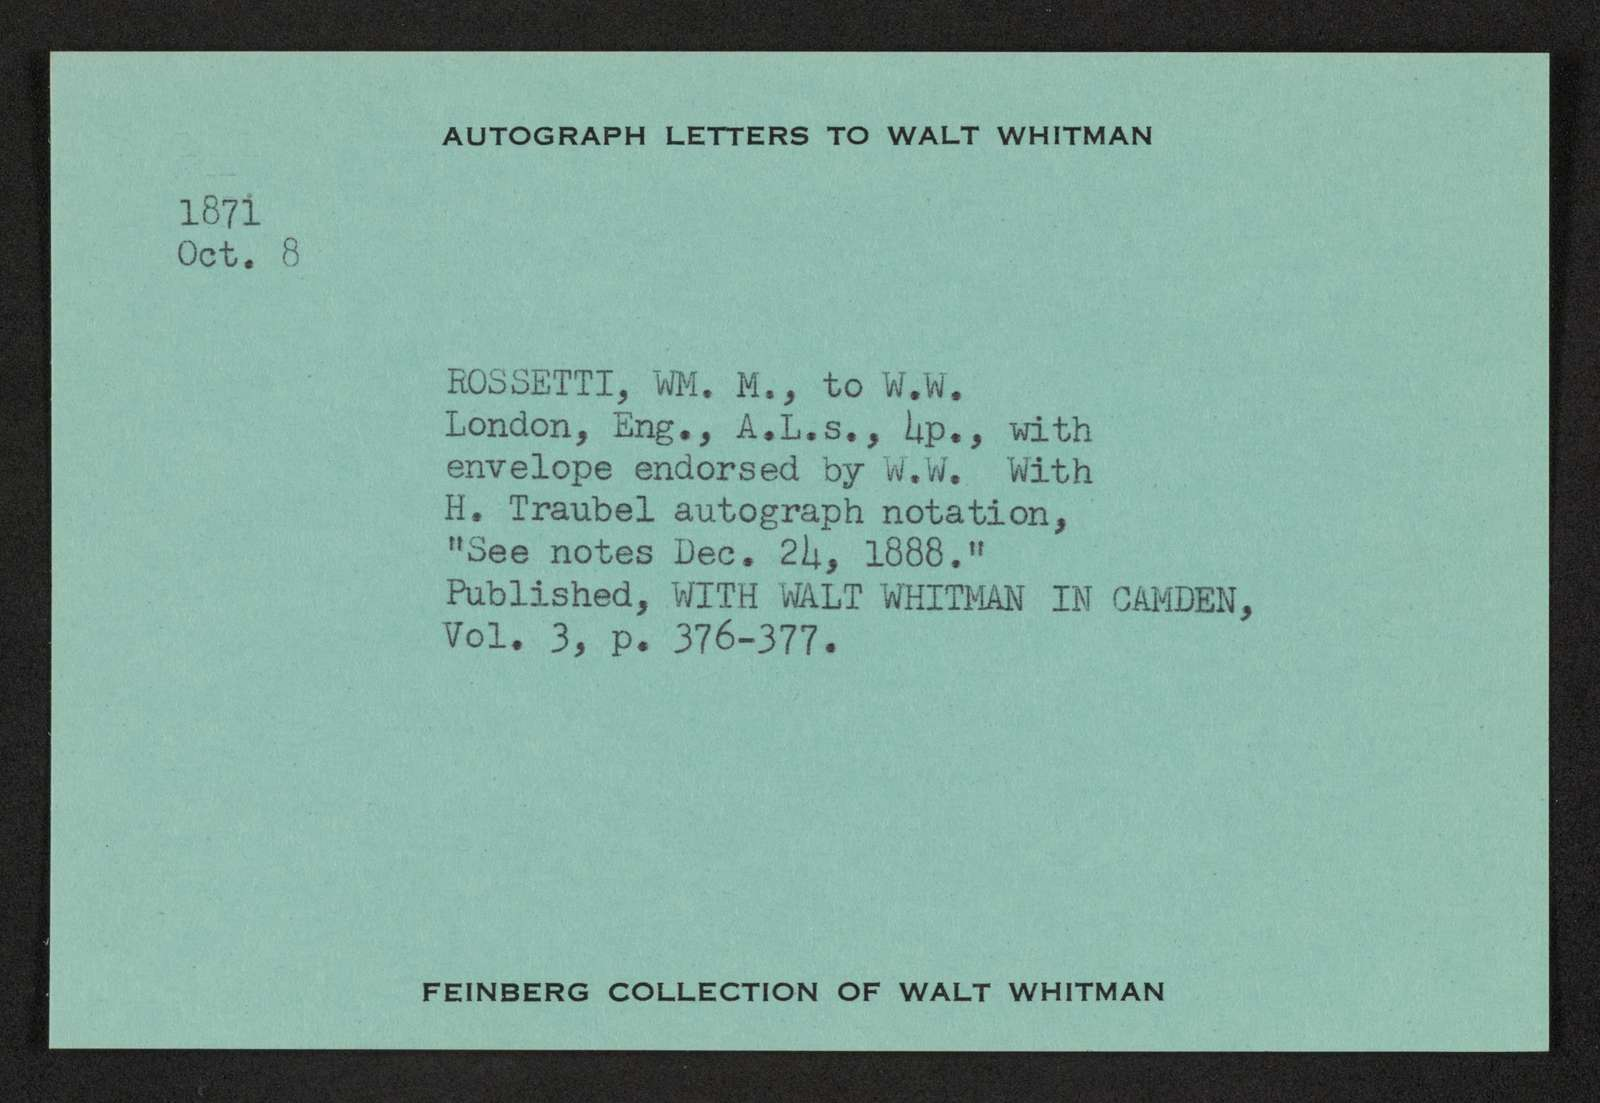 Walt Whitman Papers in the Charles E. Feinberg Collection: Supplementary File, 1806-1981; Catalog cards and index, undated; Index, N-Z